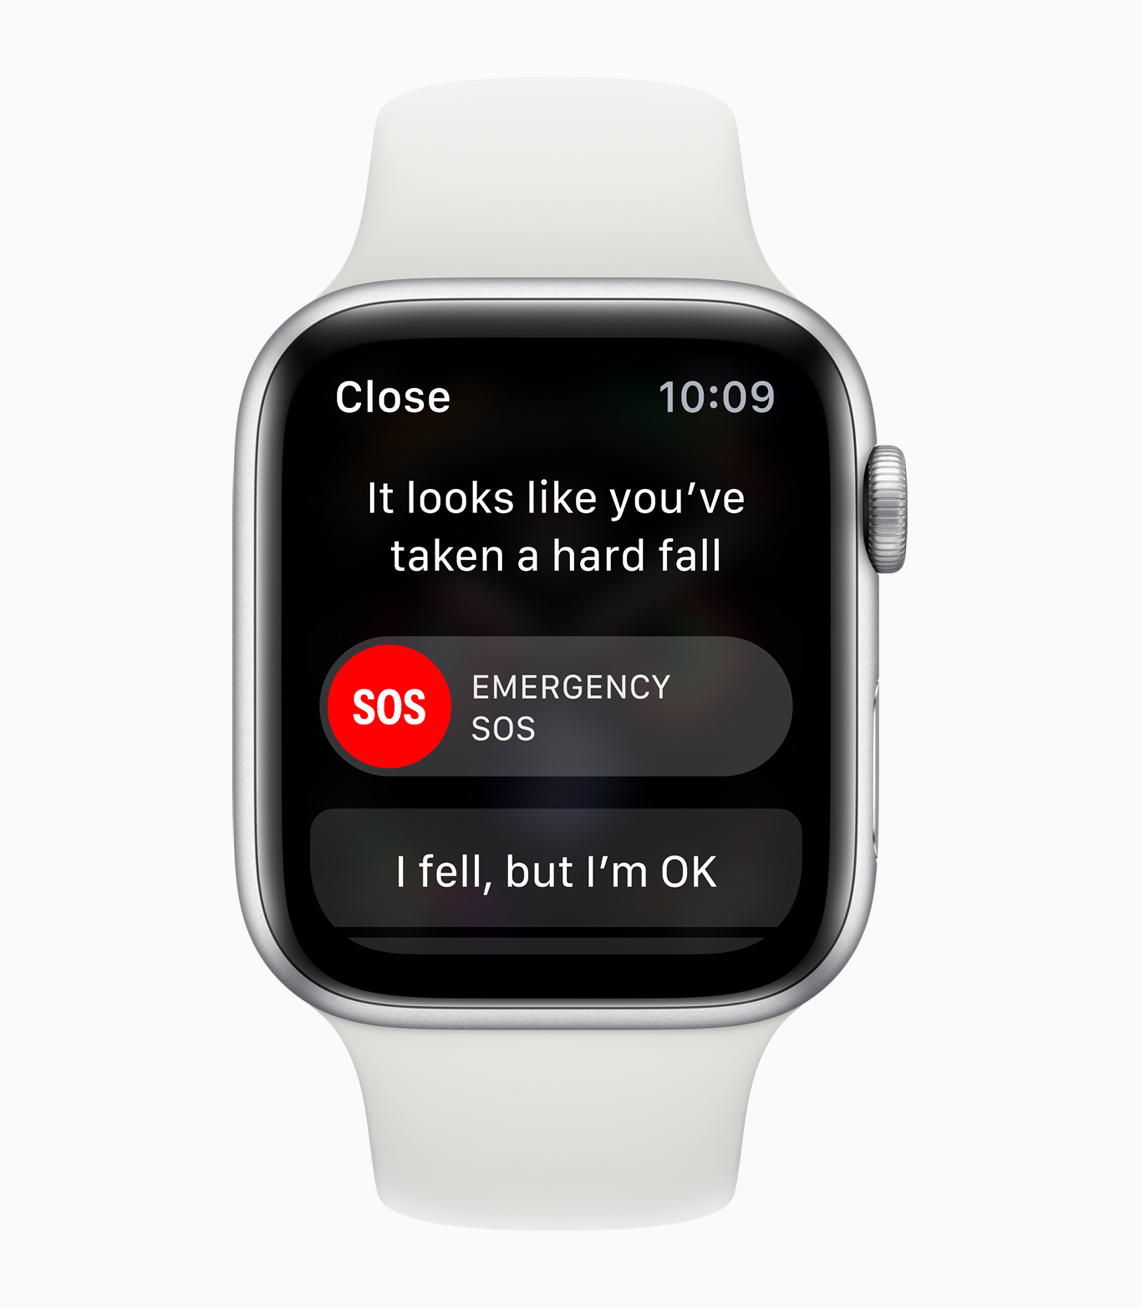 https://www.apple.com/newsroom/images/product/watch/standard/apple-watch-series4_sos-emergency-services_09122018_inline.jpg.large_2x.jpg